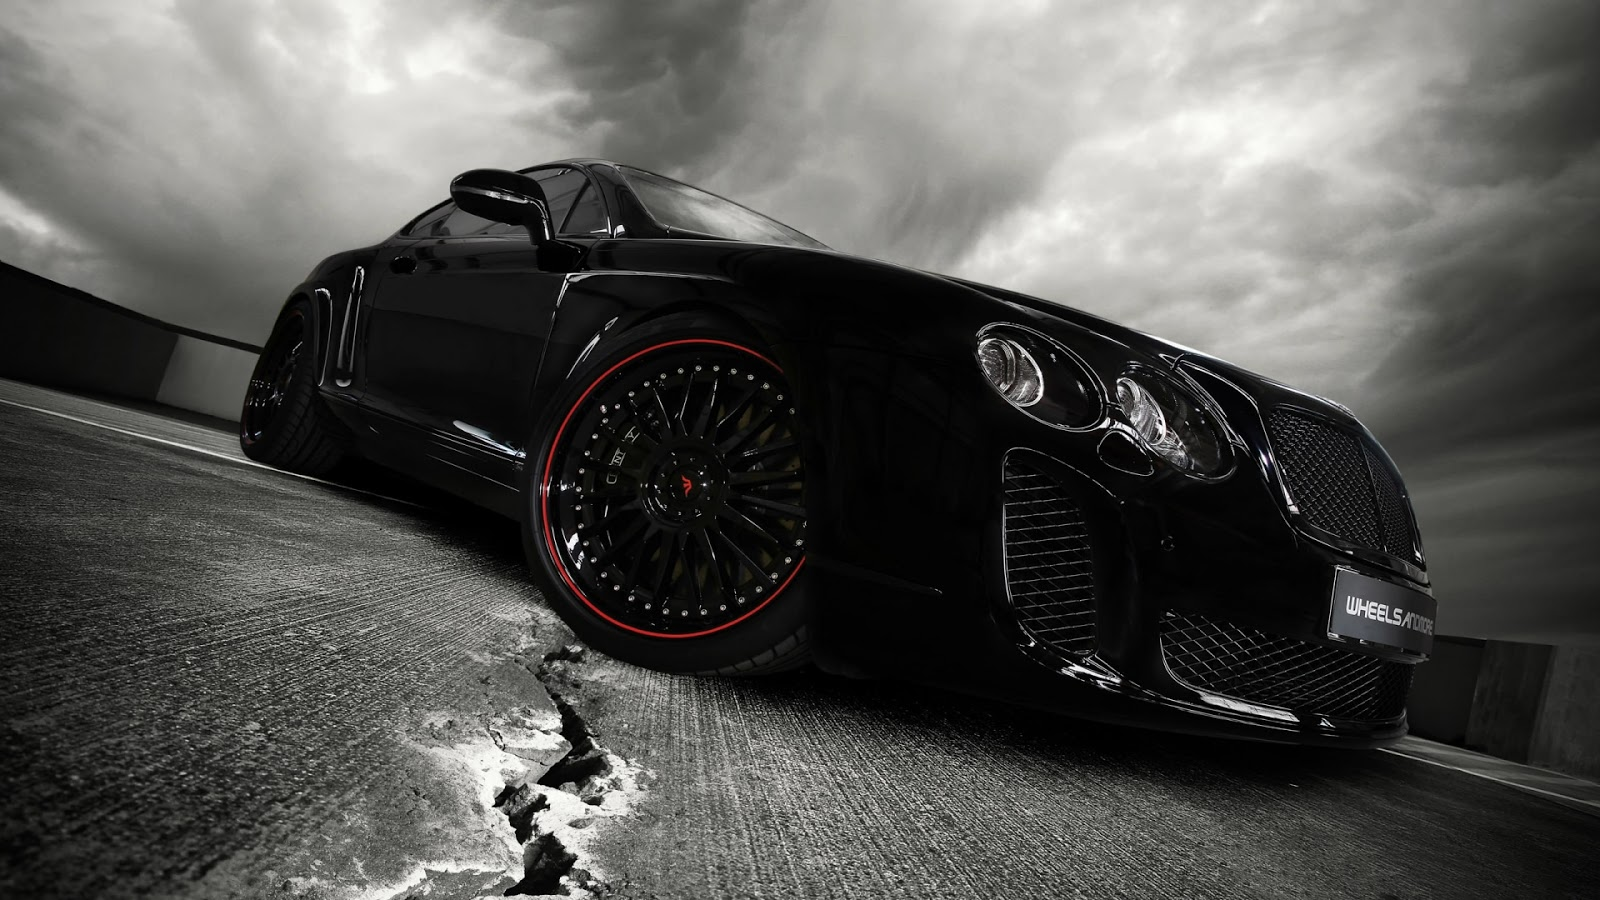 Download super hd black car wallpaper . Click on the image to see the ...